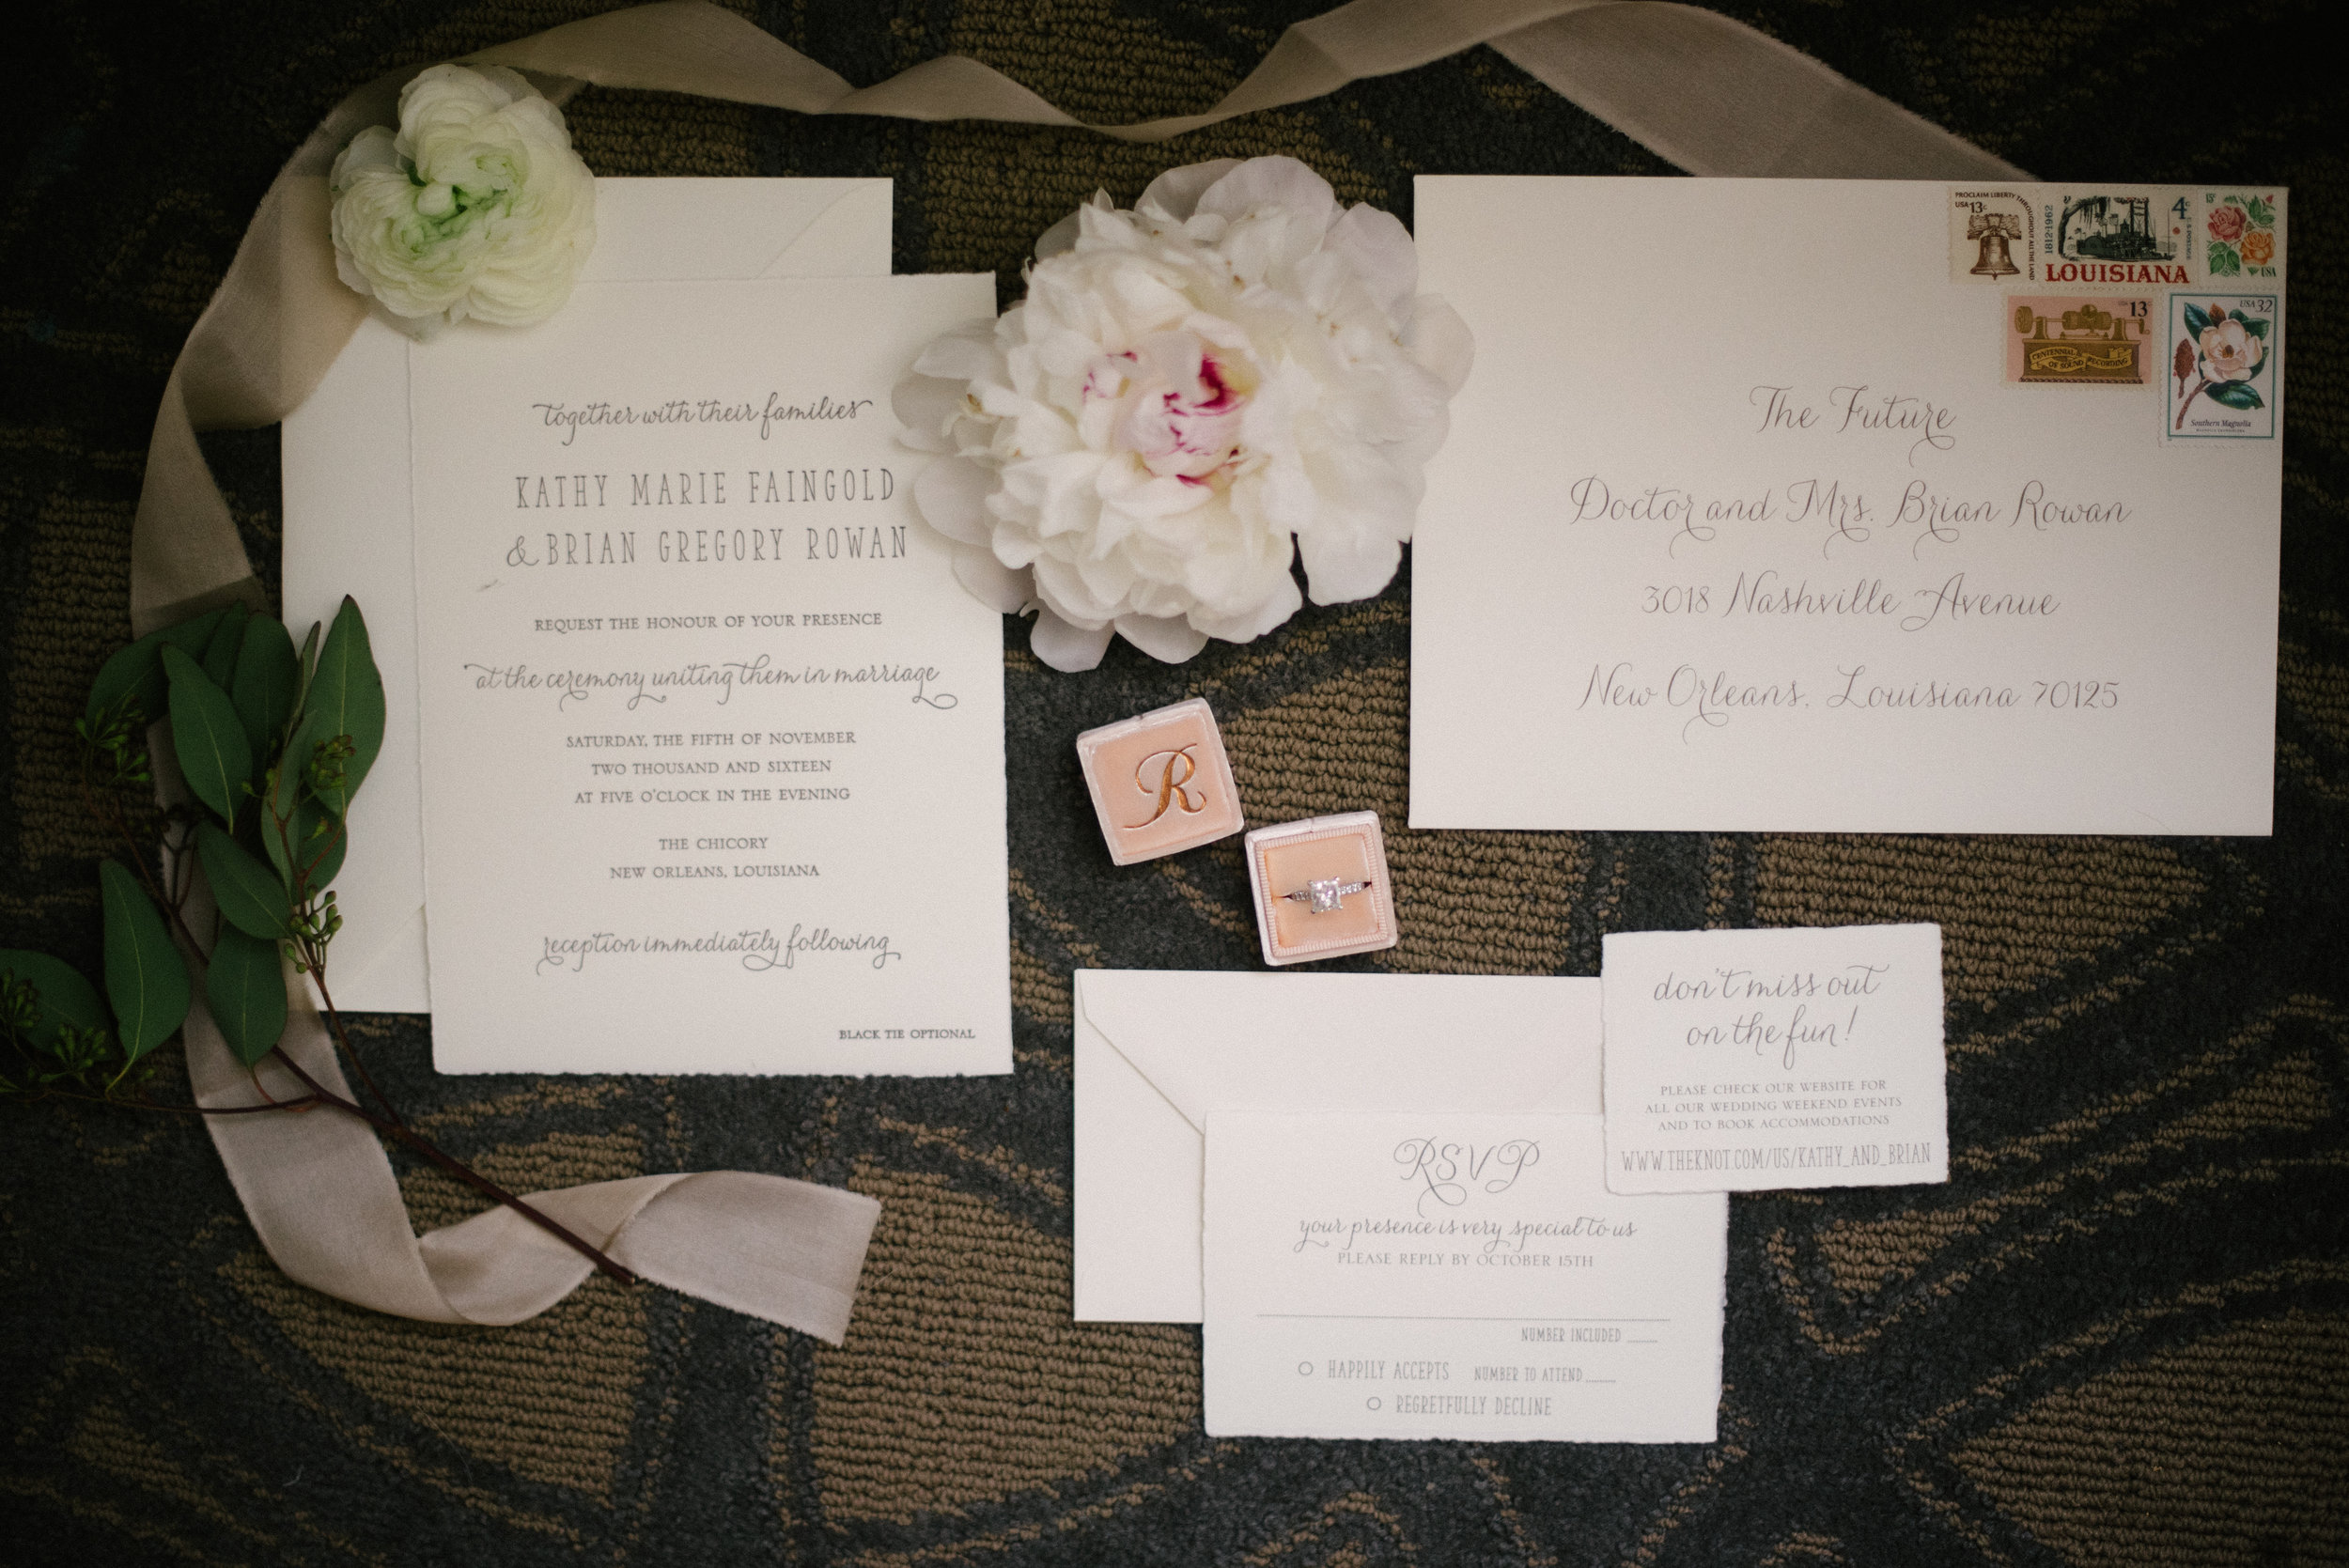 The Chicory New Orleans Wedding 11.jpg